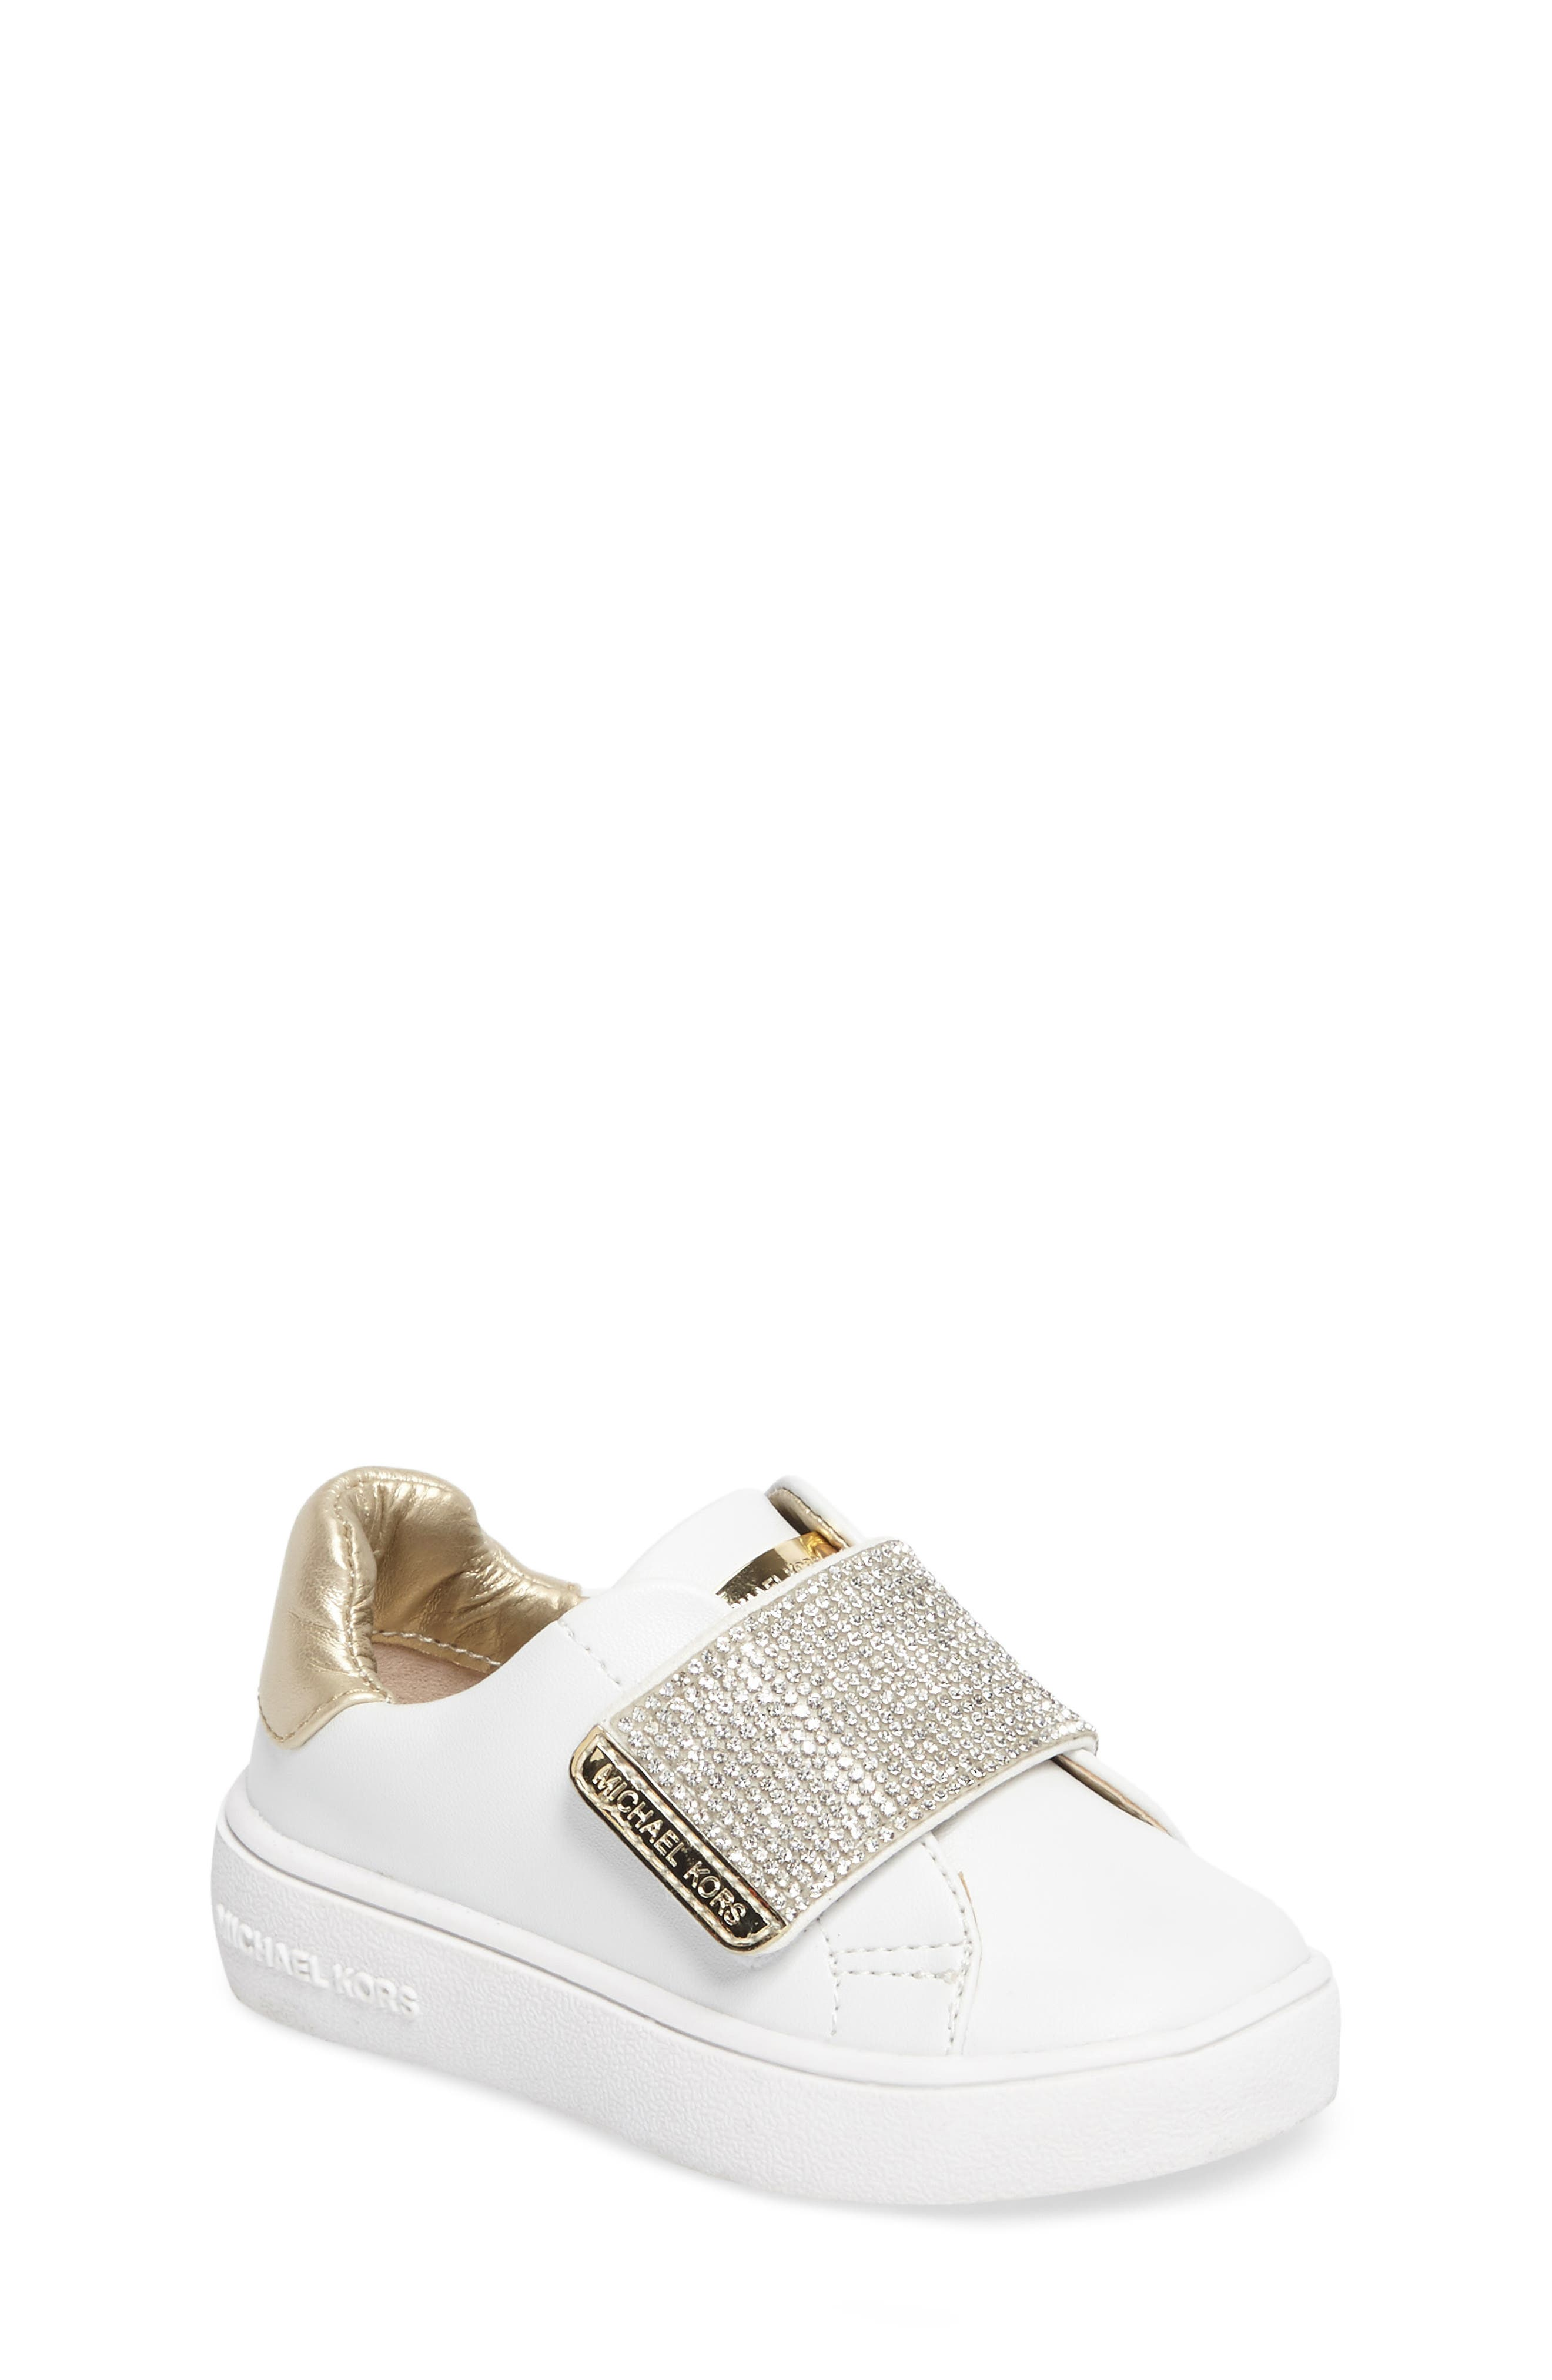 MICHAEL Michael Kors Ivy Candy Sneaker (Walker, Toddler, Little Kid & Big Kid)